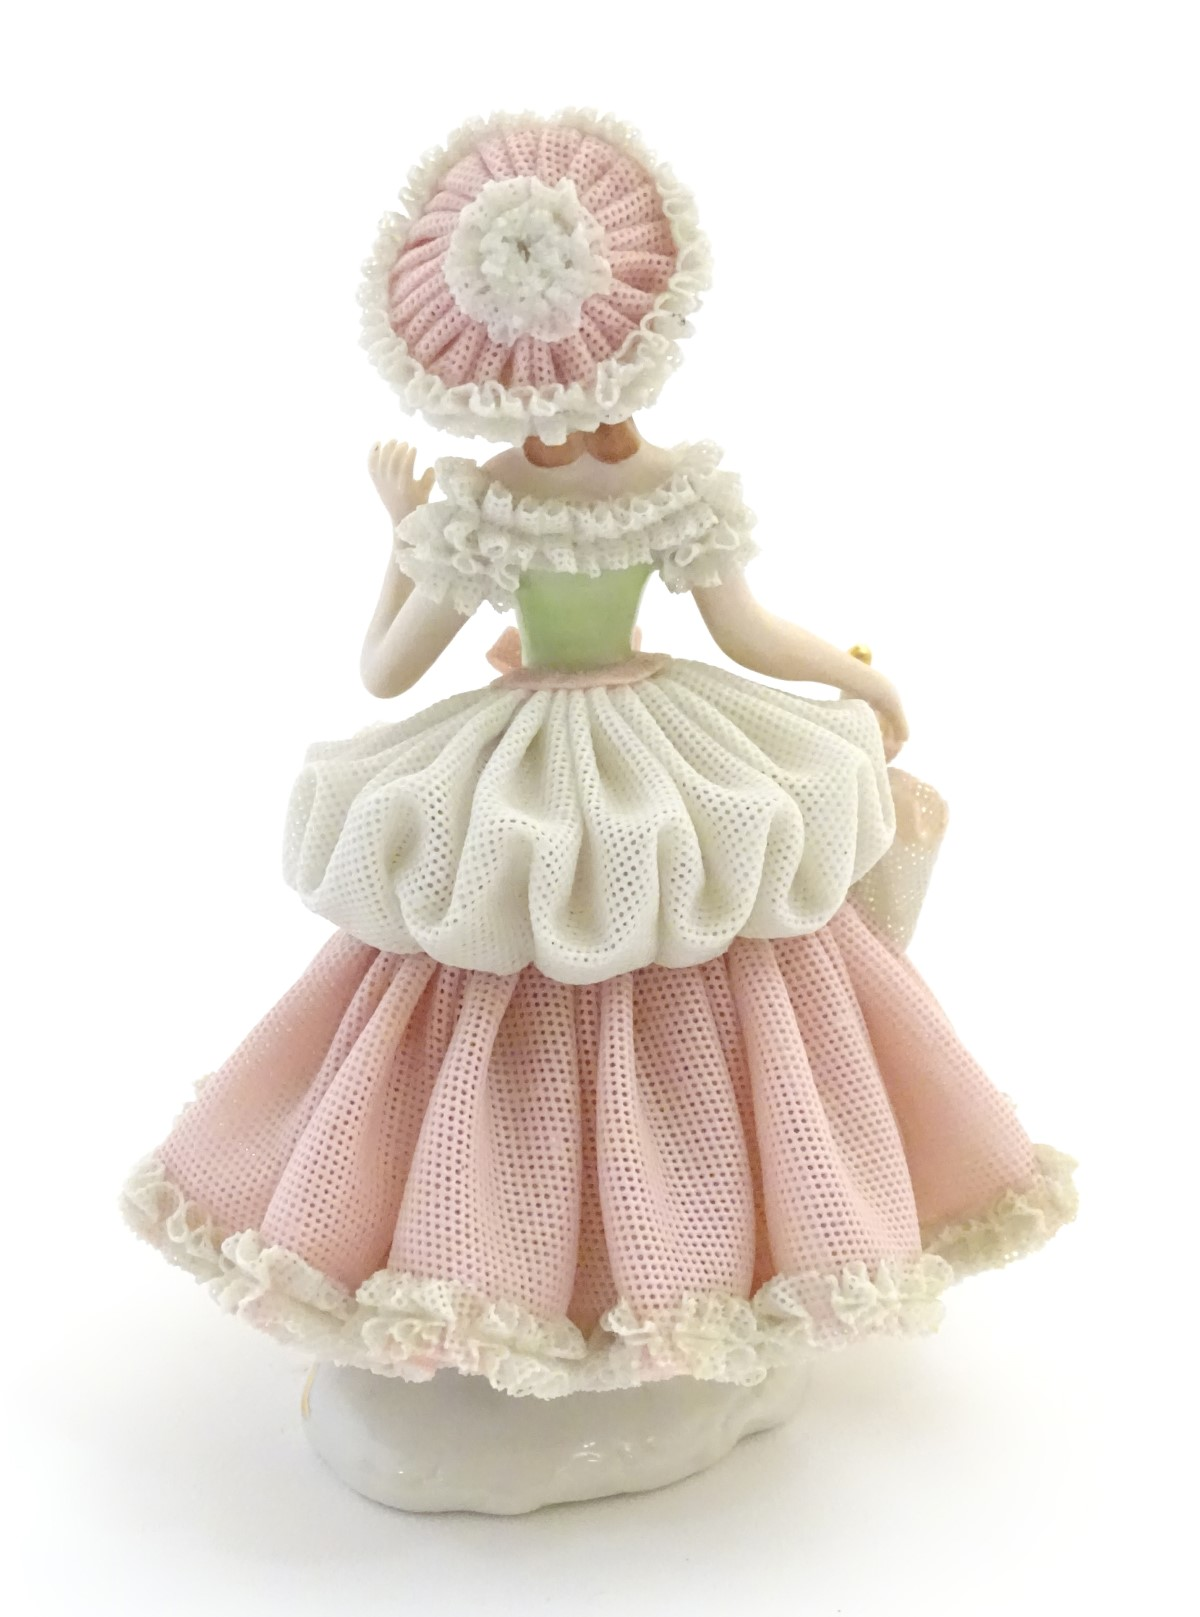 Lot 46 - A Dresden porcelain figure of a lady wearing a porcelain lace dress and hat holding an umbrella.